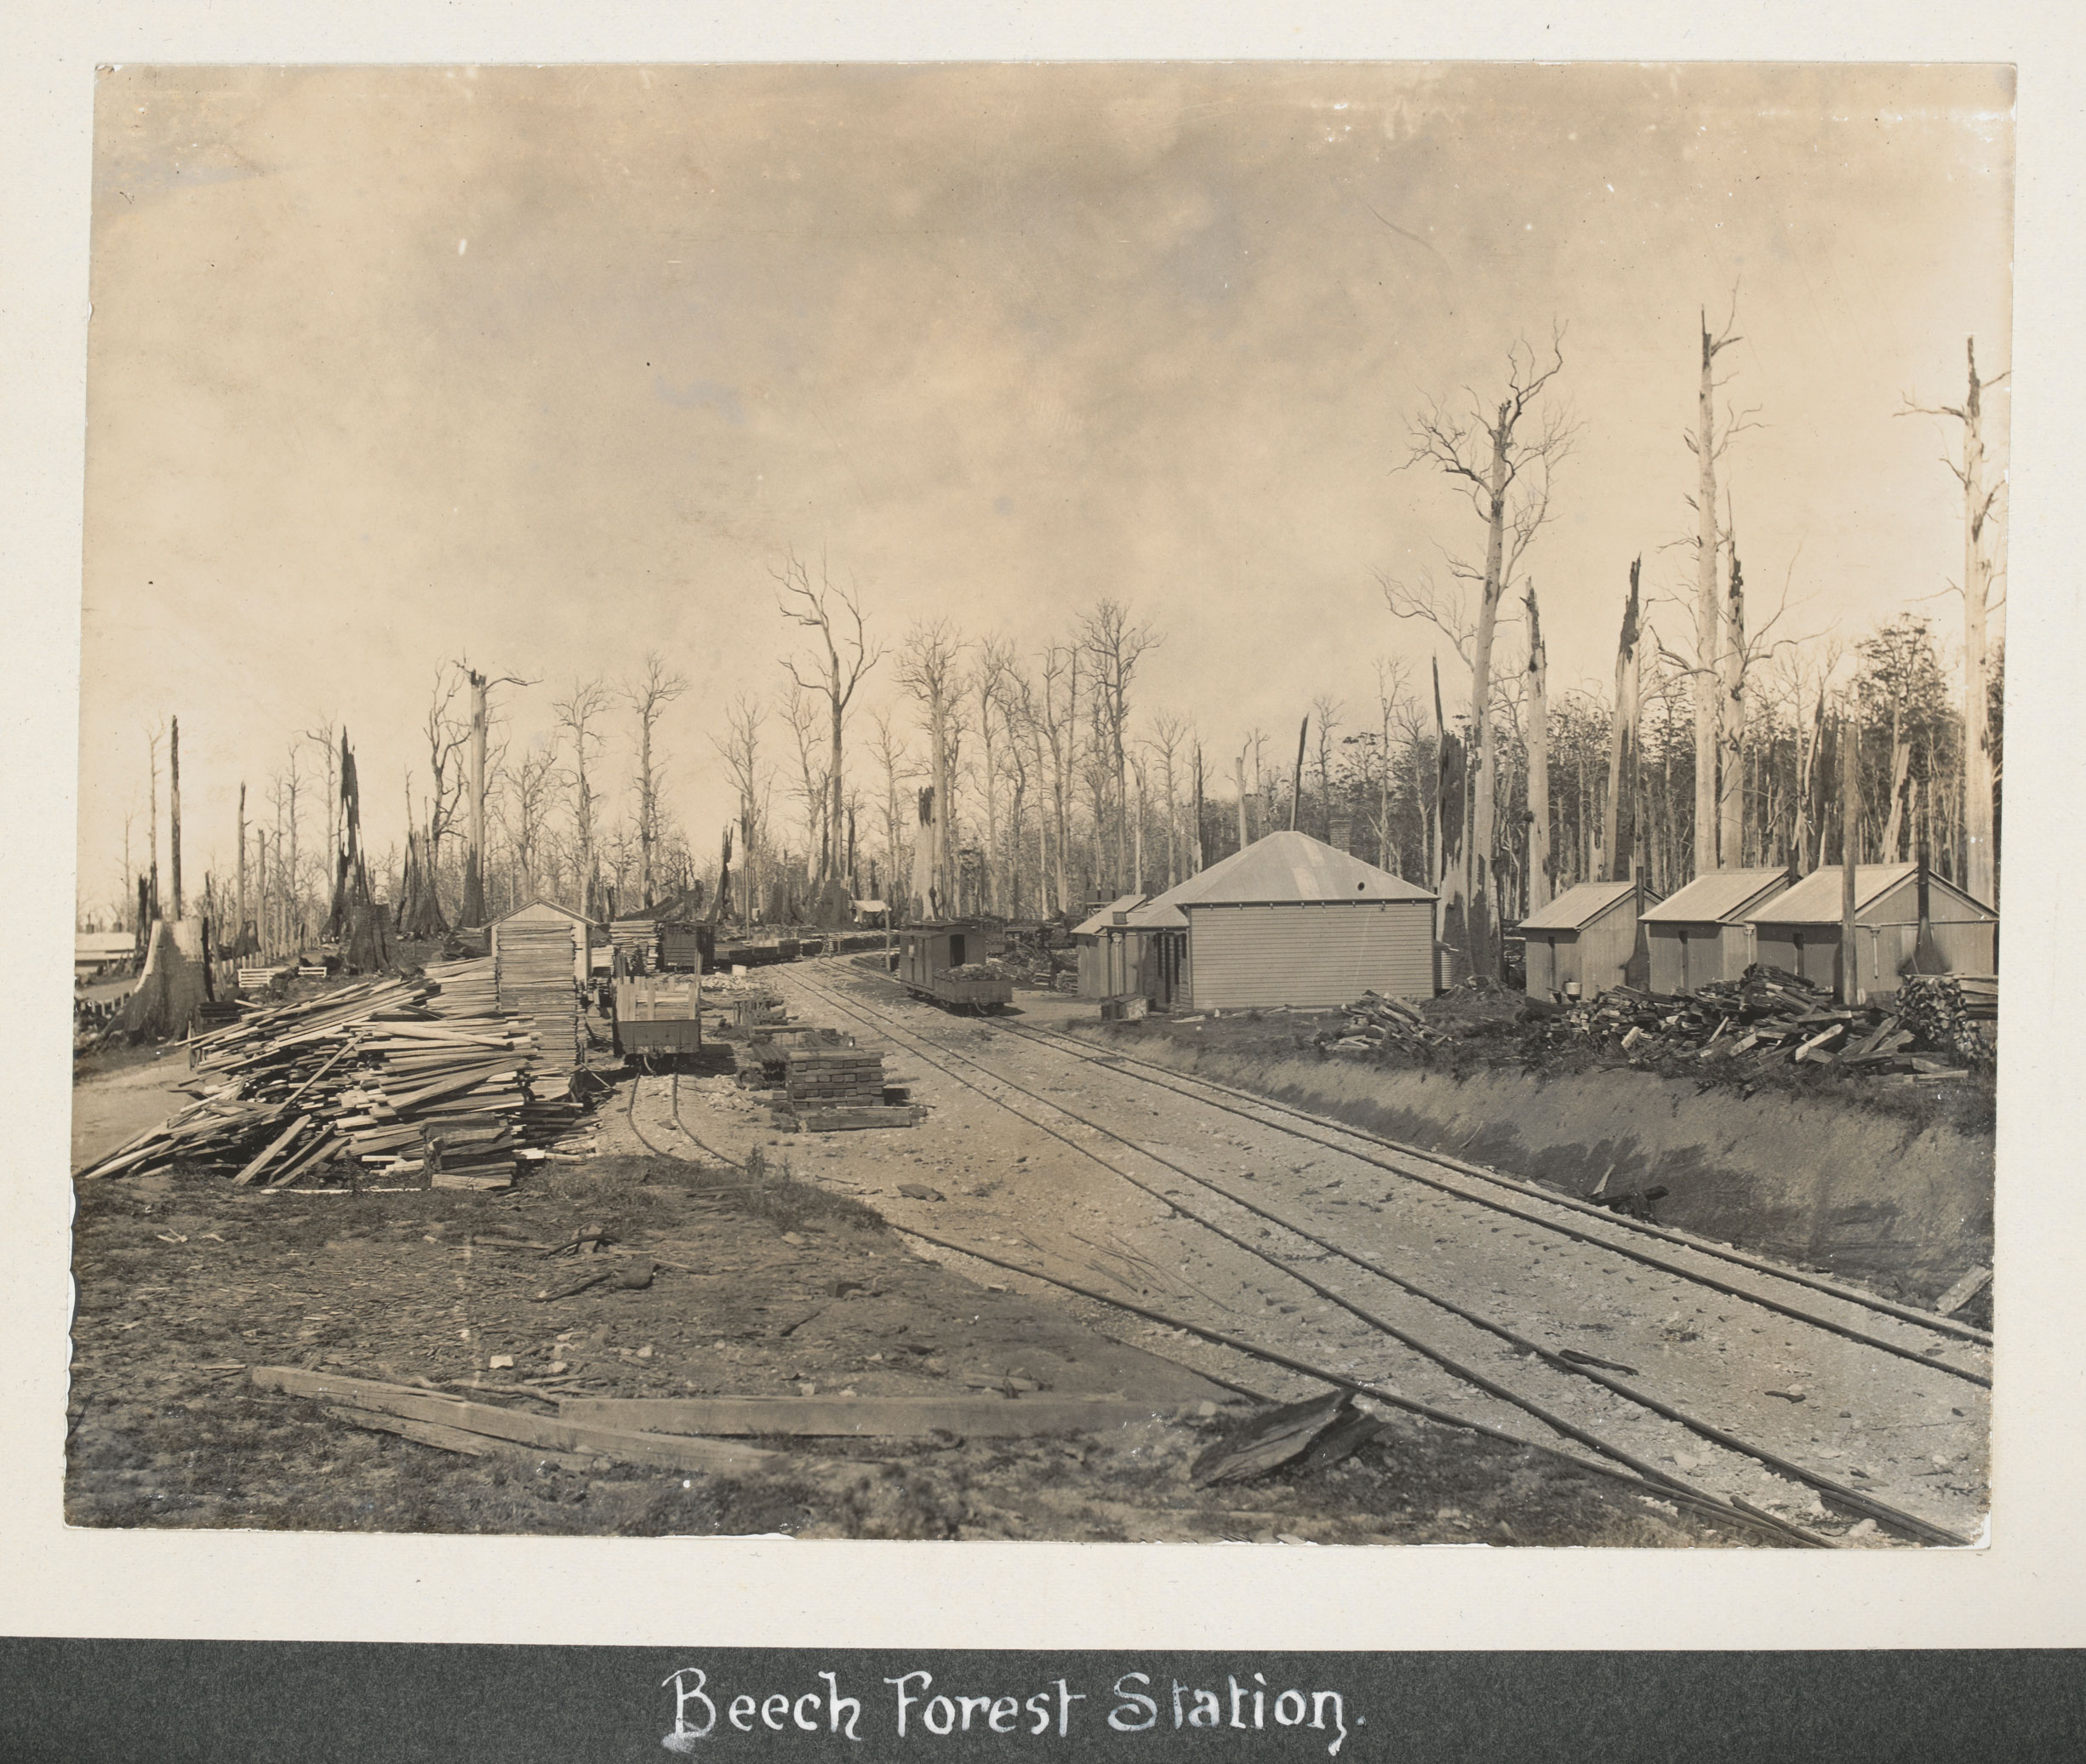 Arnest, J. (1906).  Beech Forest Station [Vic.] [picture].,  In collection: Album of photographs of the Beech Forest and Colac districts, Victoria.